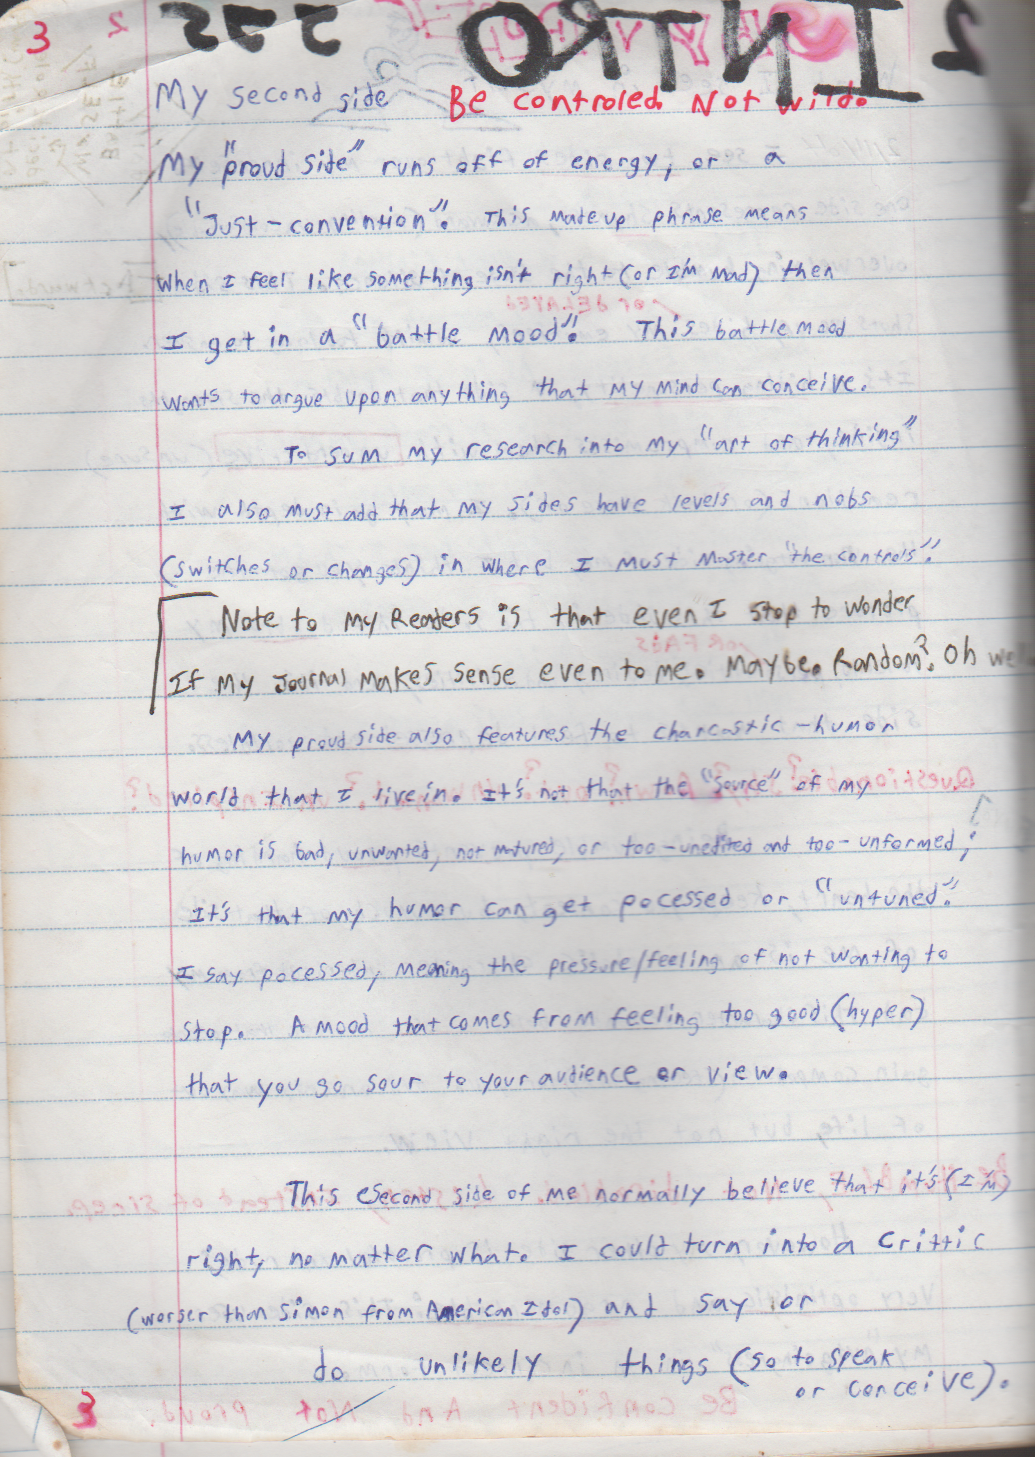 2004-02-11 - Wednesday - Joey Journal - Transition from high school to college that fall, intro pages-2.png